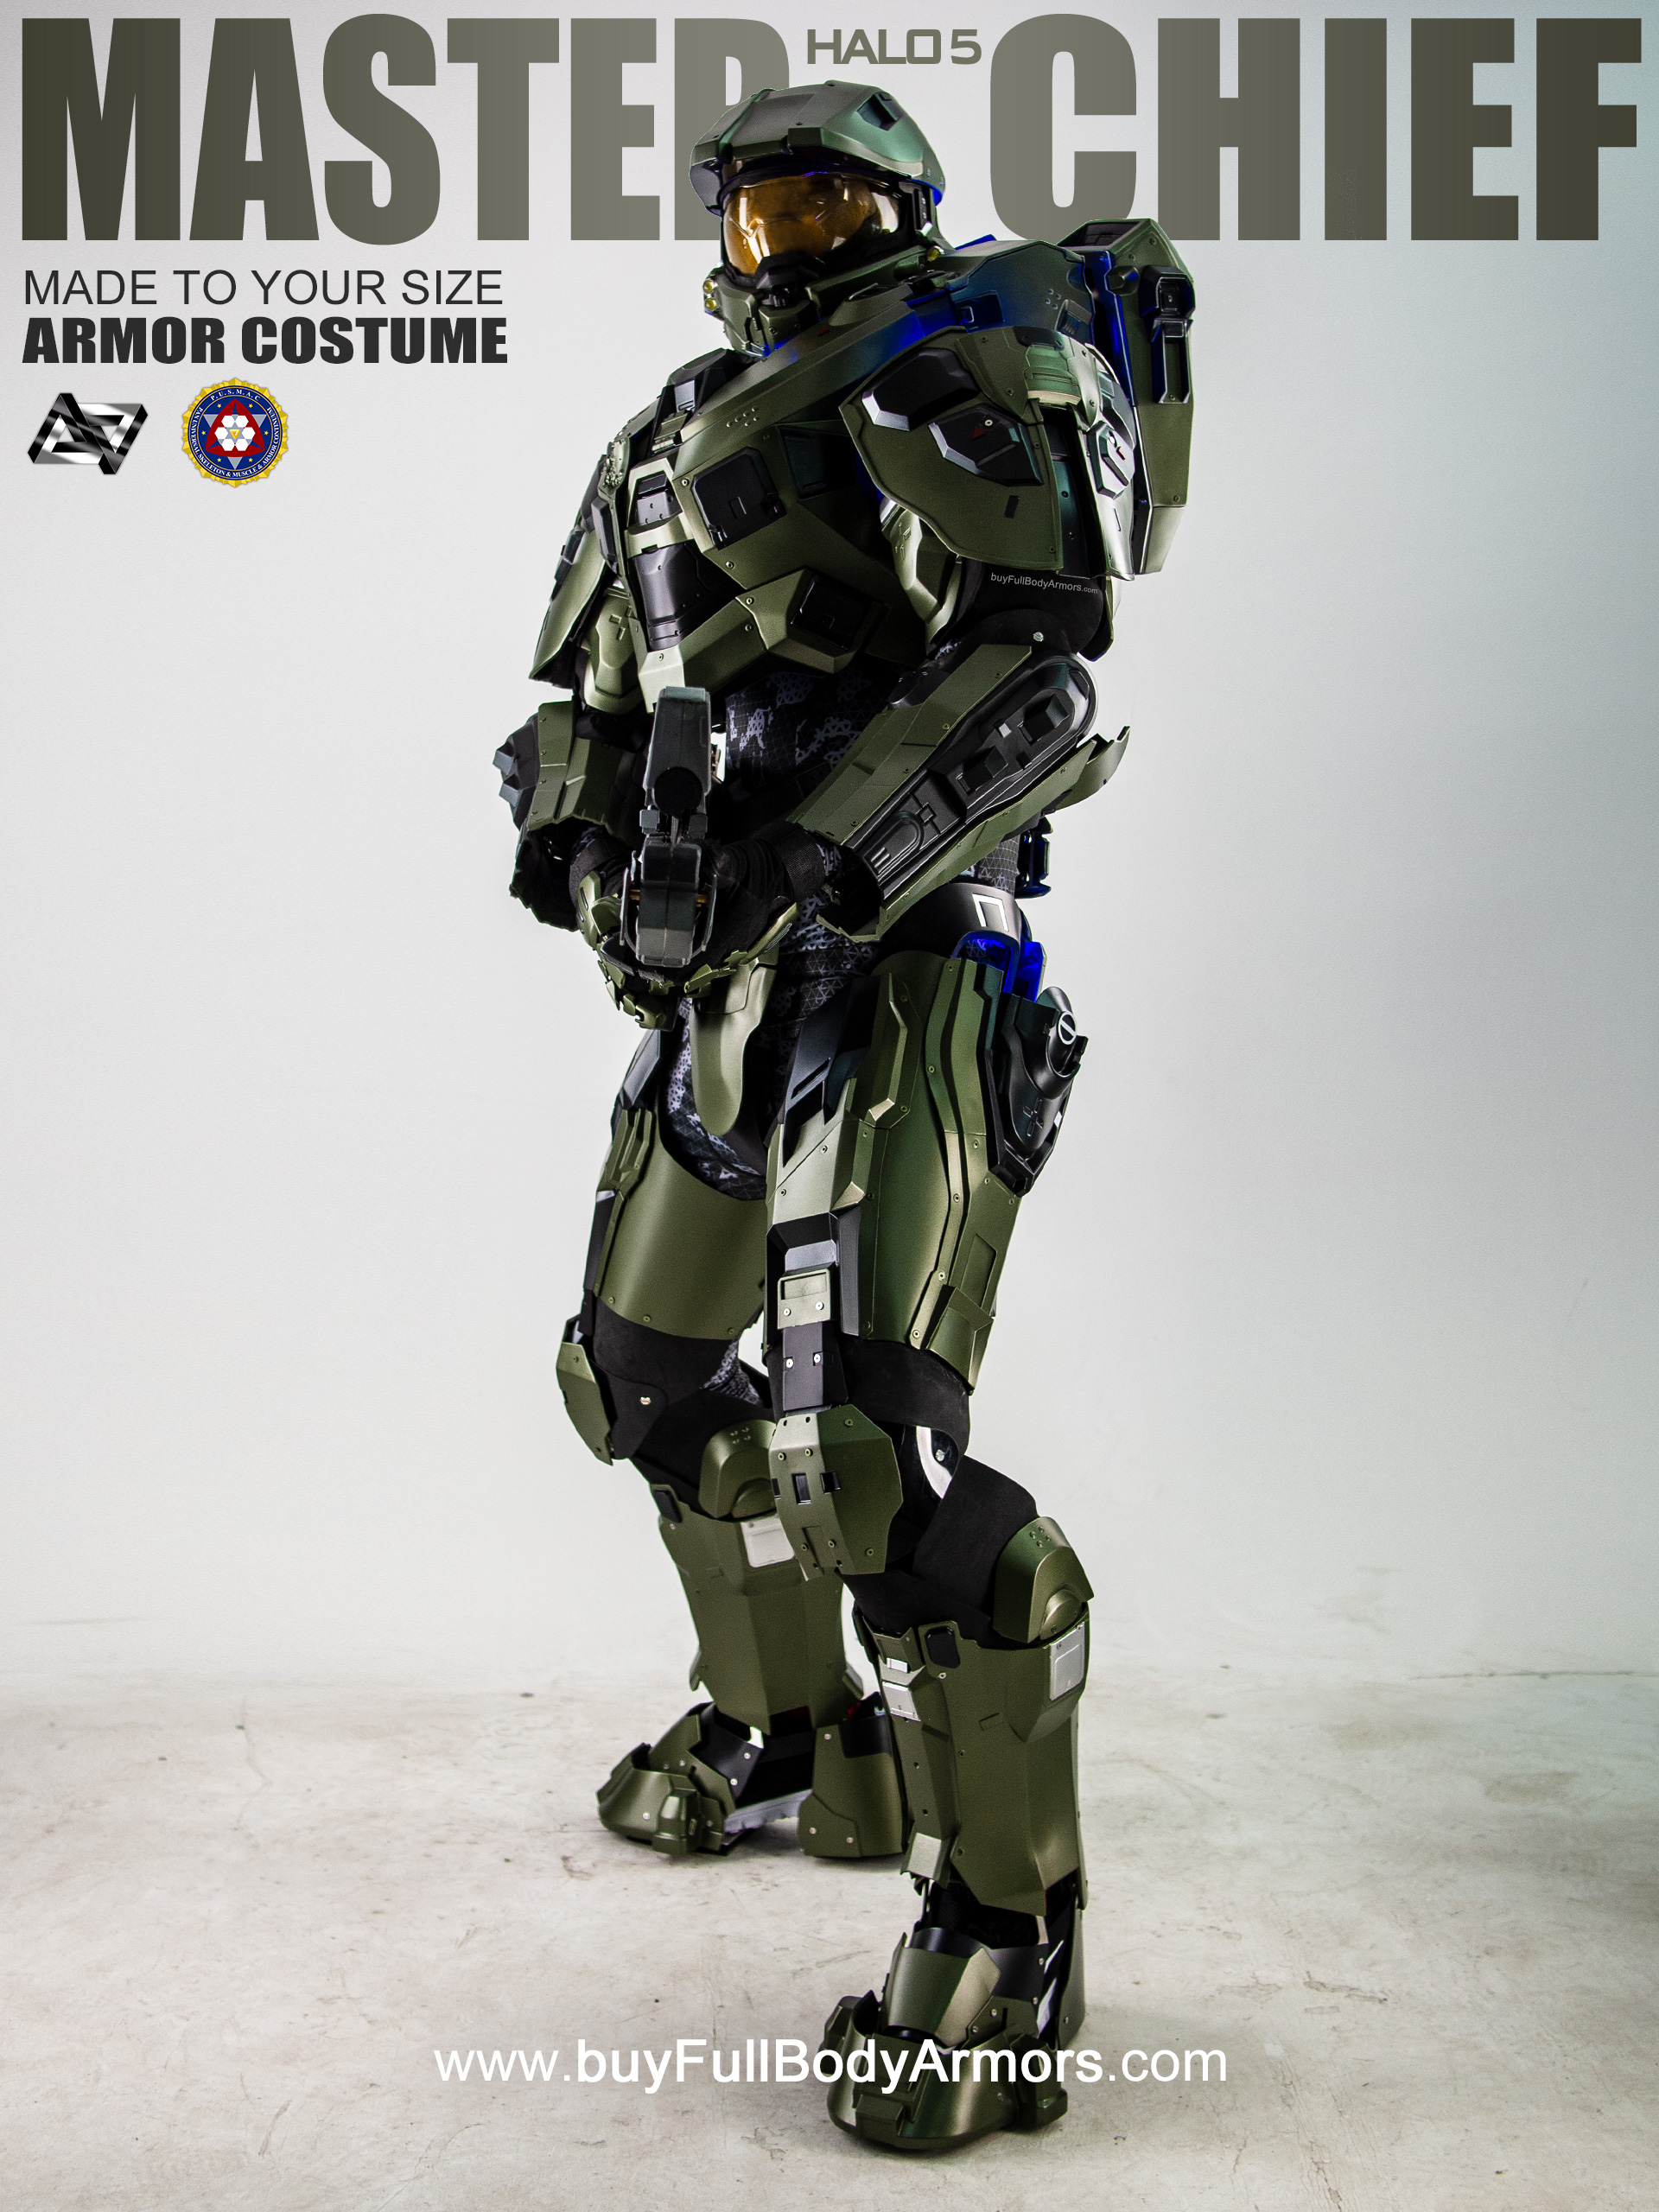 Halo 5 Master Chief Armor Suit Costume front